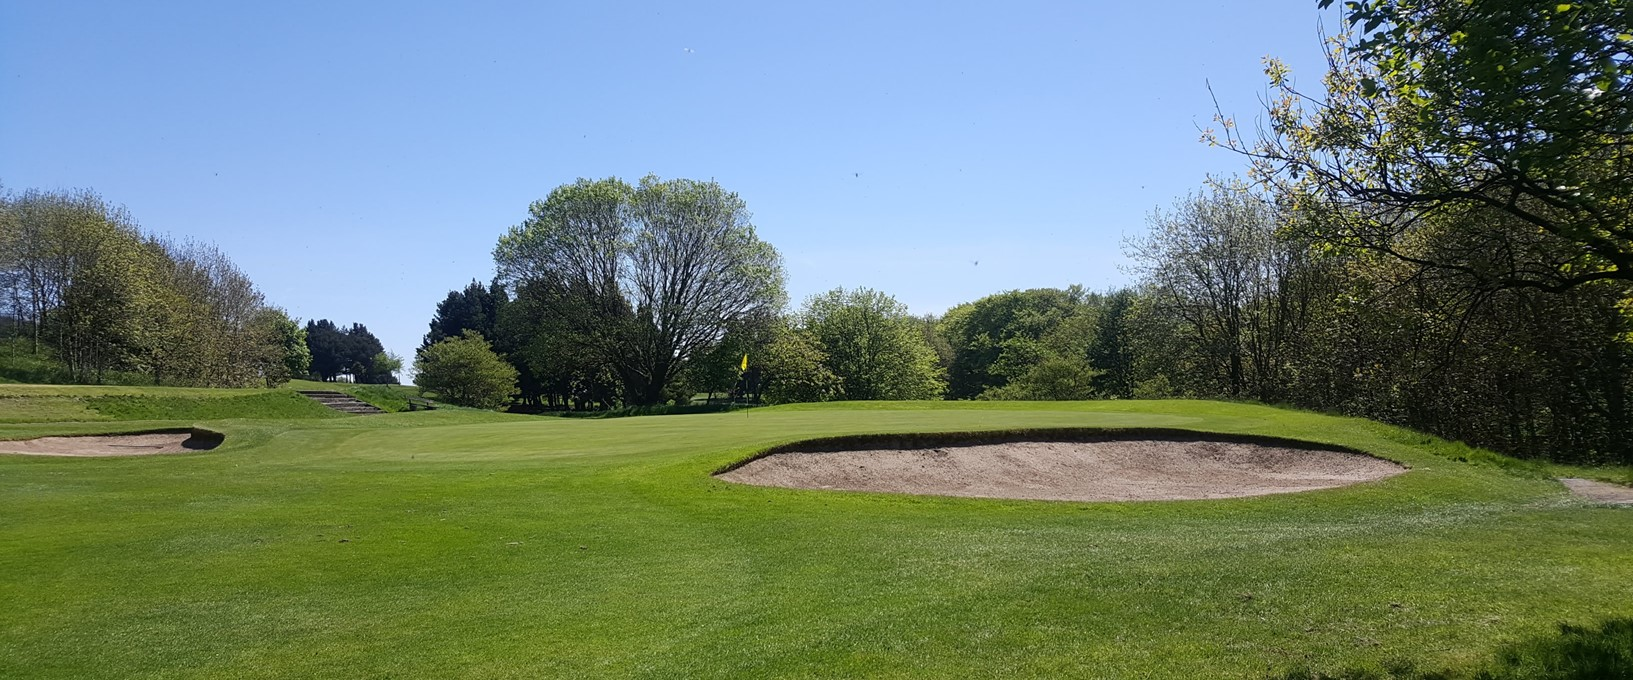 The 5th green at West Bradford Golf Club